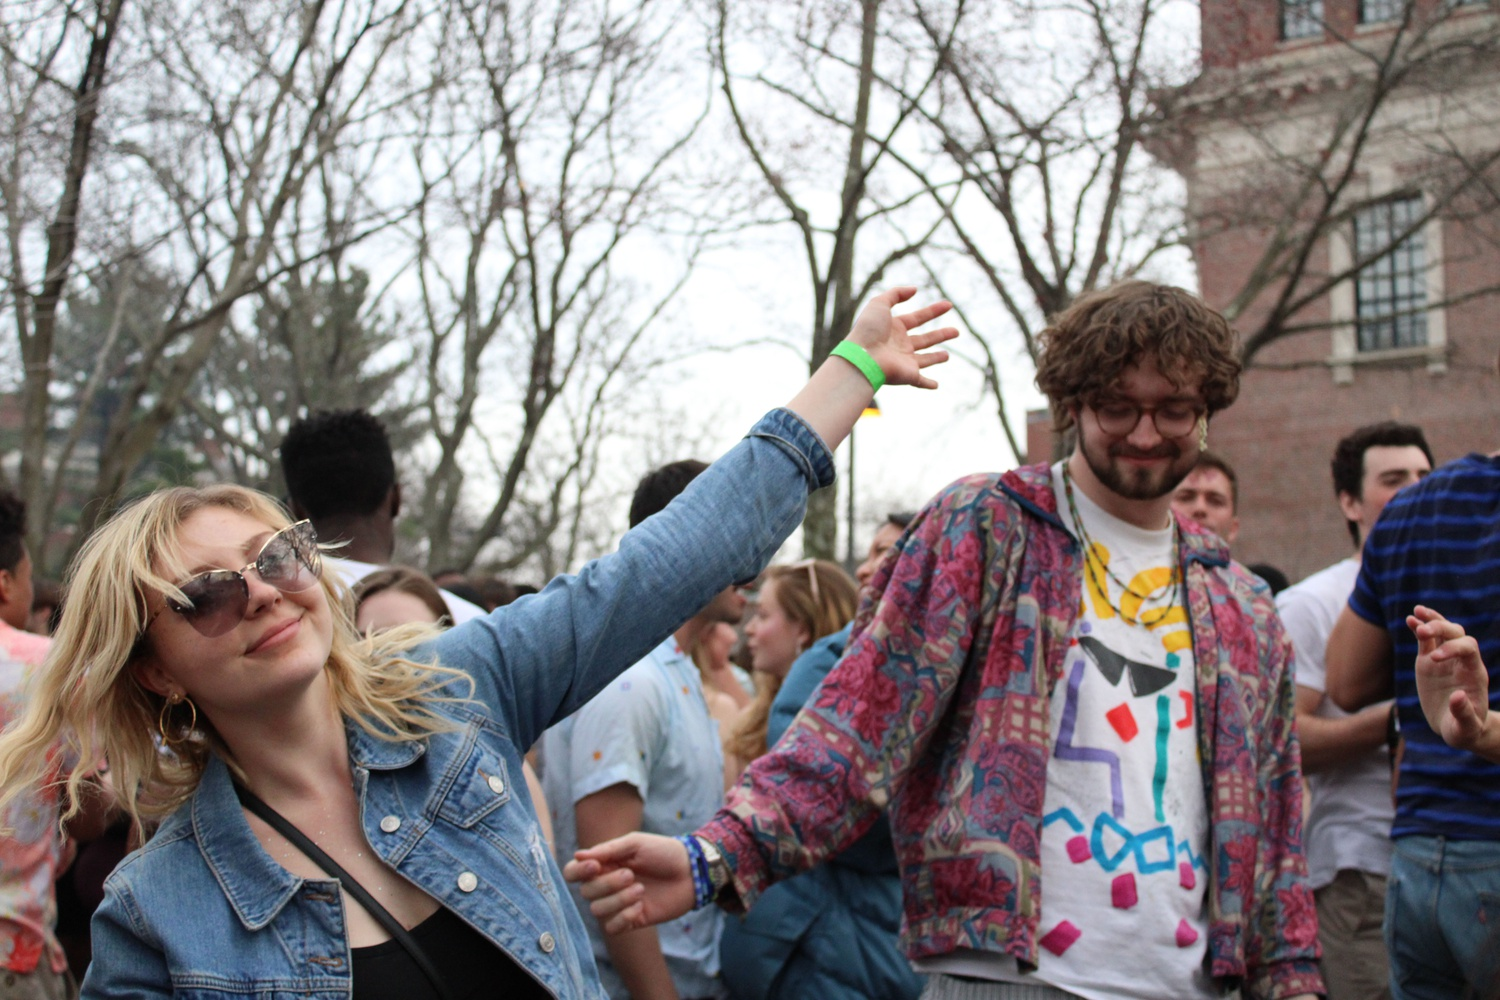 Students dance during the annual Yardfest concert. The College made a series of changes to the event, including moving it from Friday to Sunday afternoon.